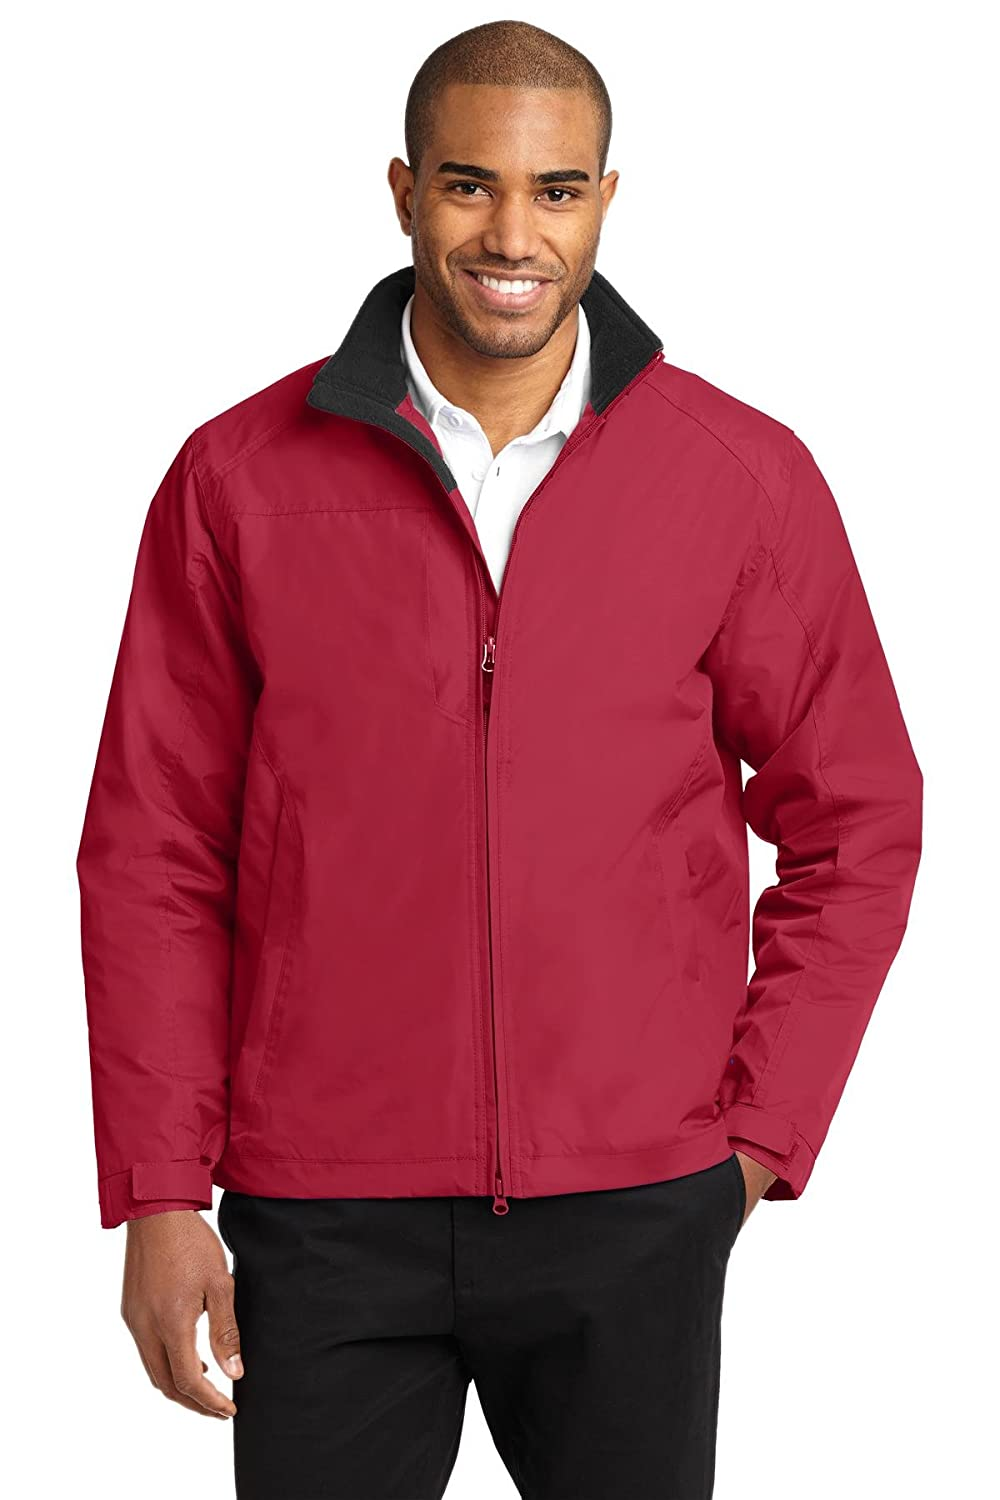 Port Authority OUTERWEAR メンズ B008FQIPRG XL|True Red/True Black True Red/True Black XL